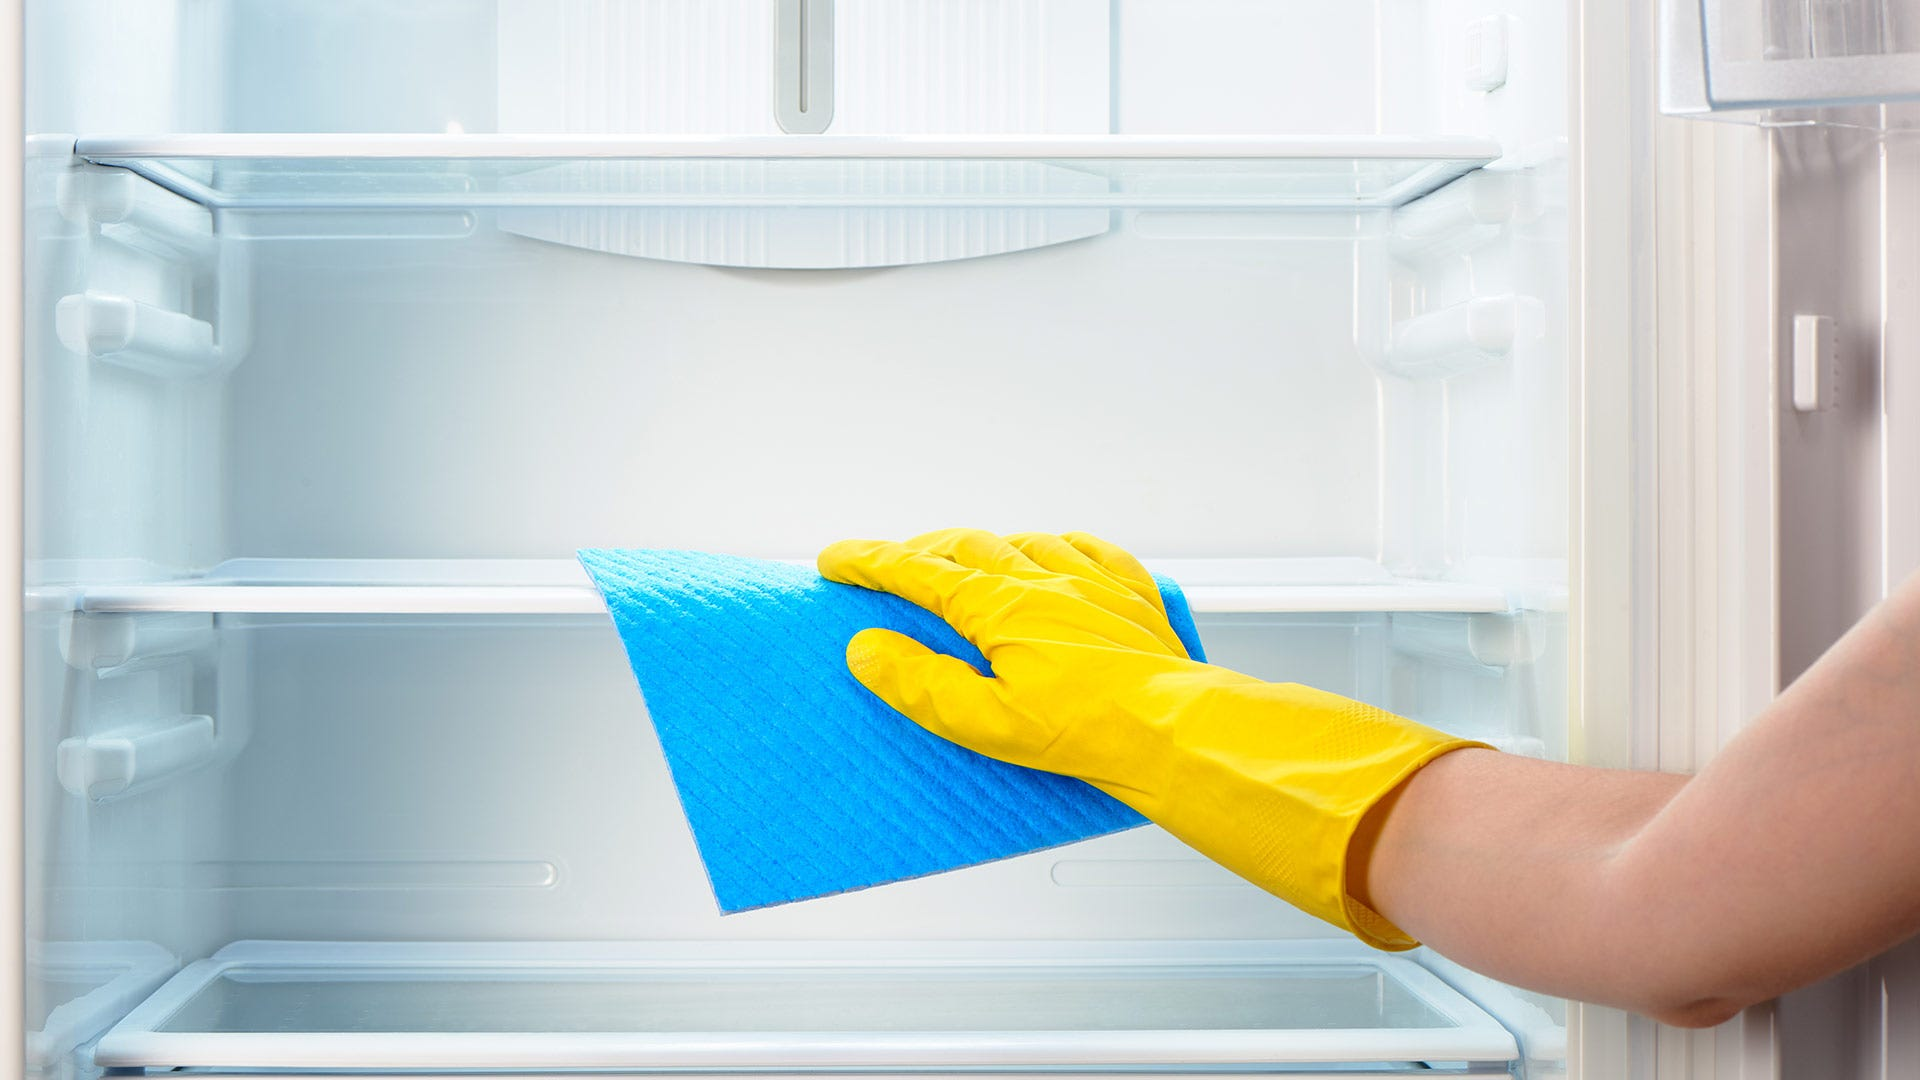 Someone wiping down the shelves of a refrigerator with a blue rag.